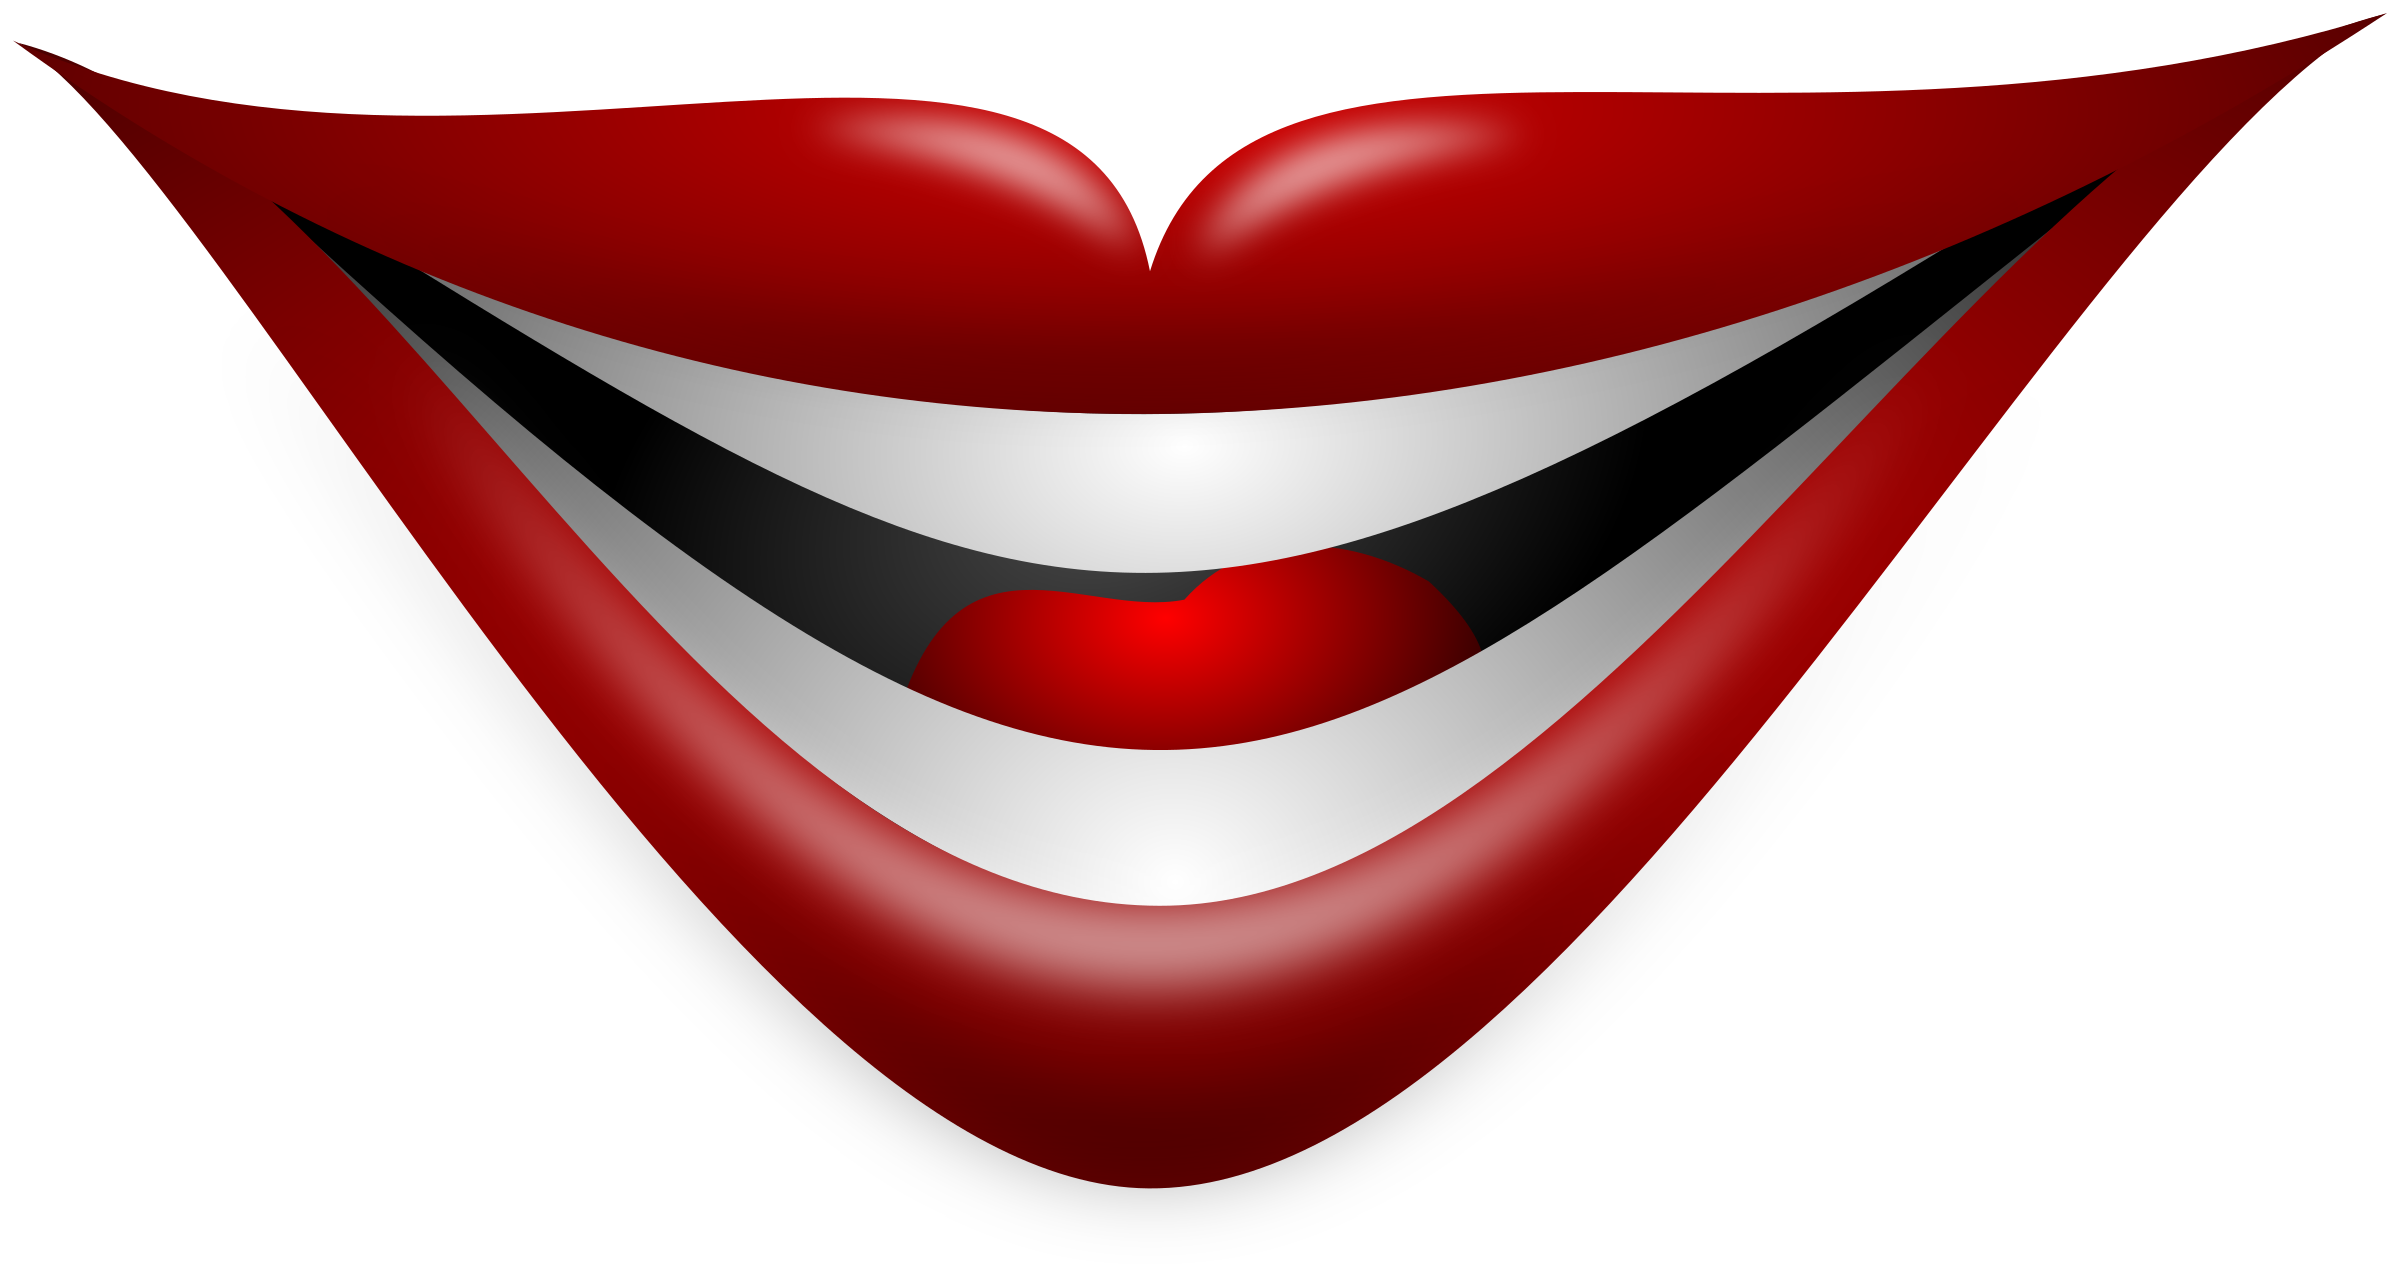 Joker smile png. Icons free and downloads